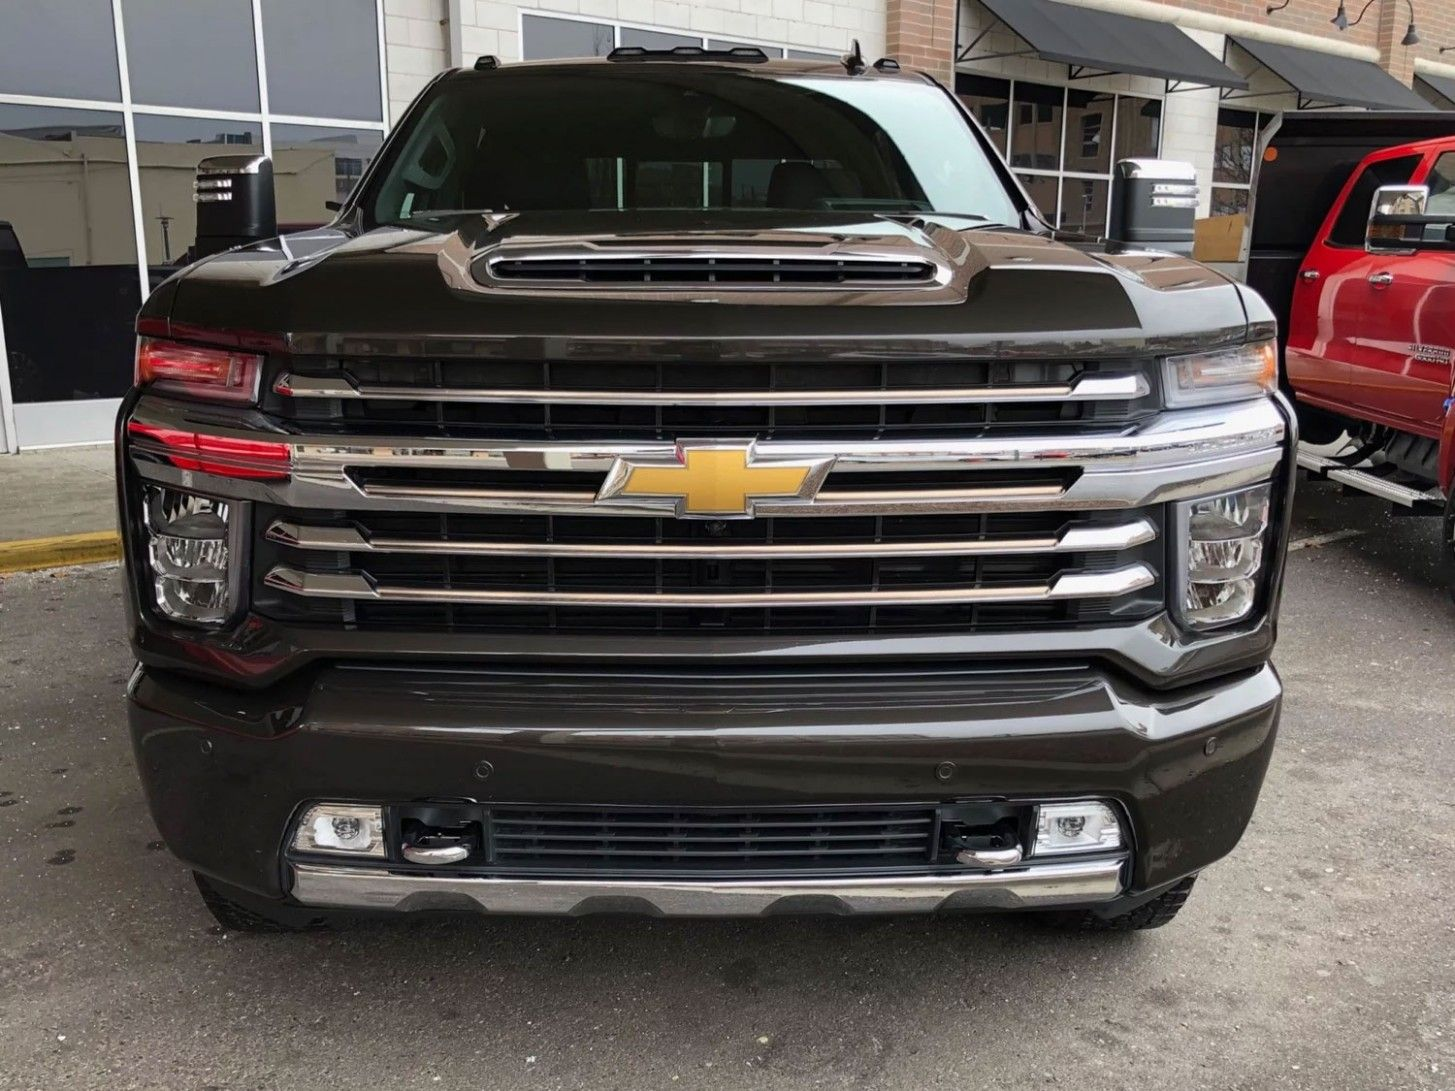 2020 Chevy 2500hd Duramax Redesign And With Images Chevrolet Silverado Duramax Chevrolet